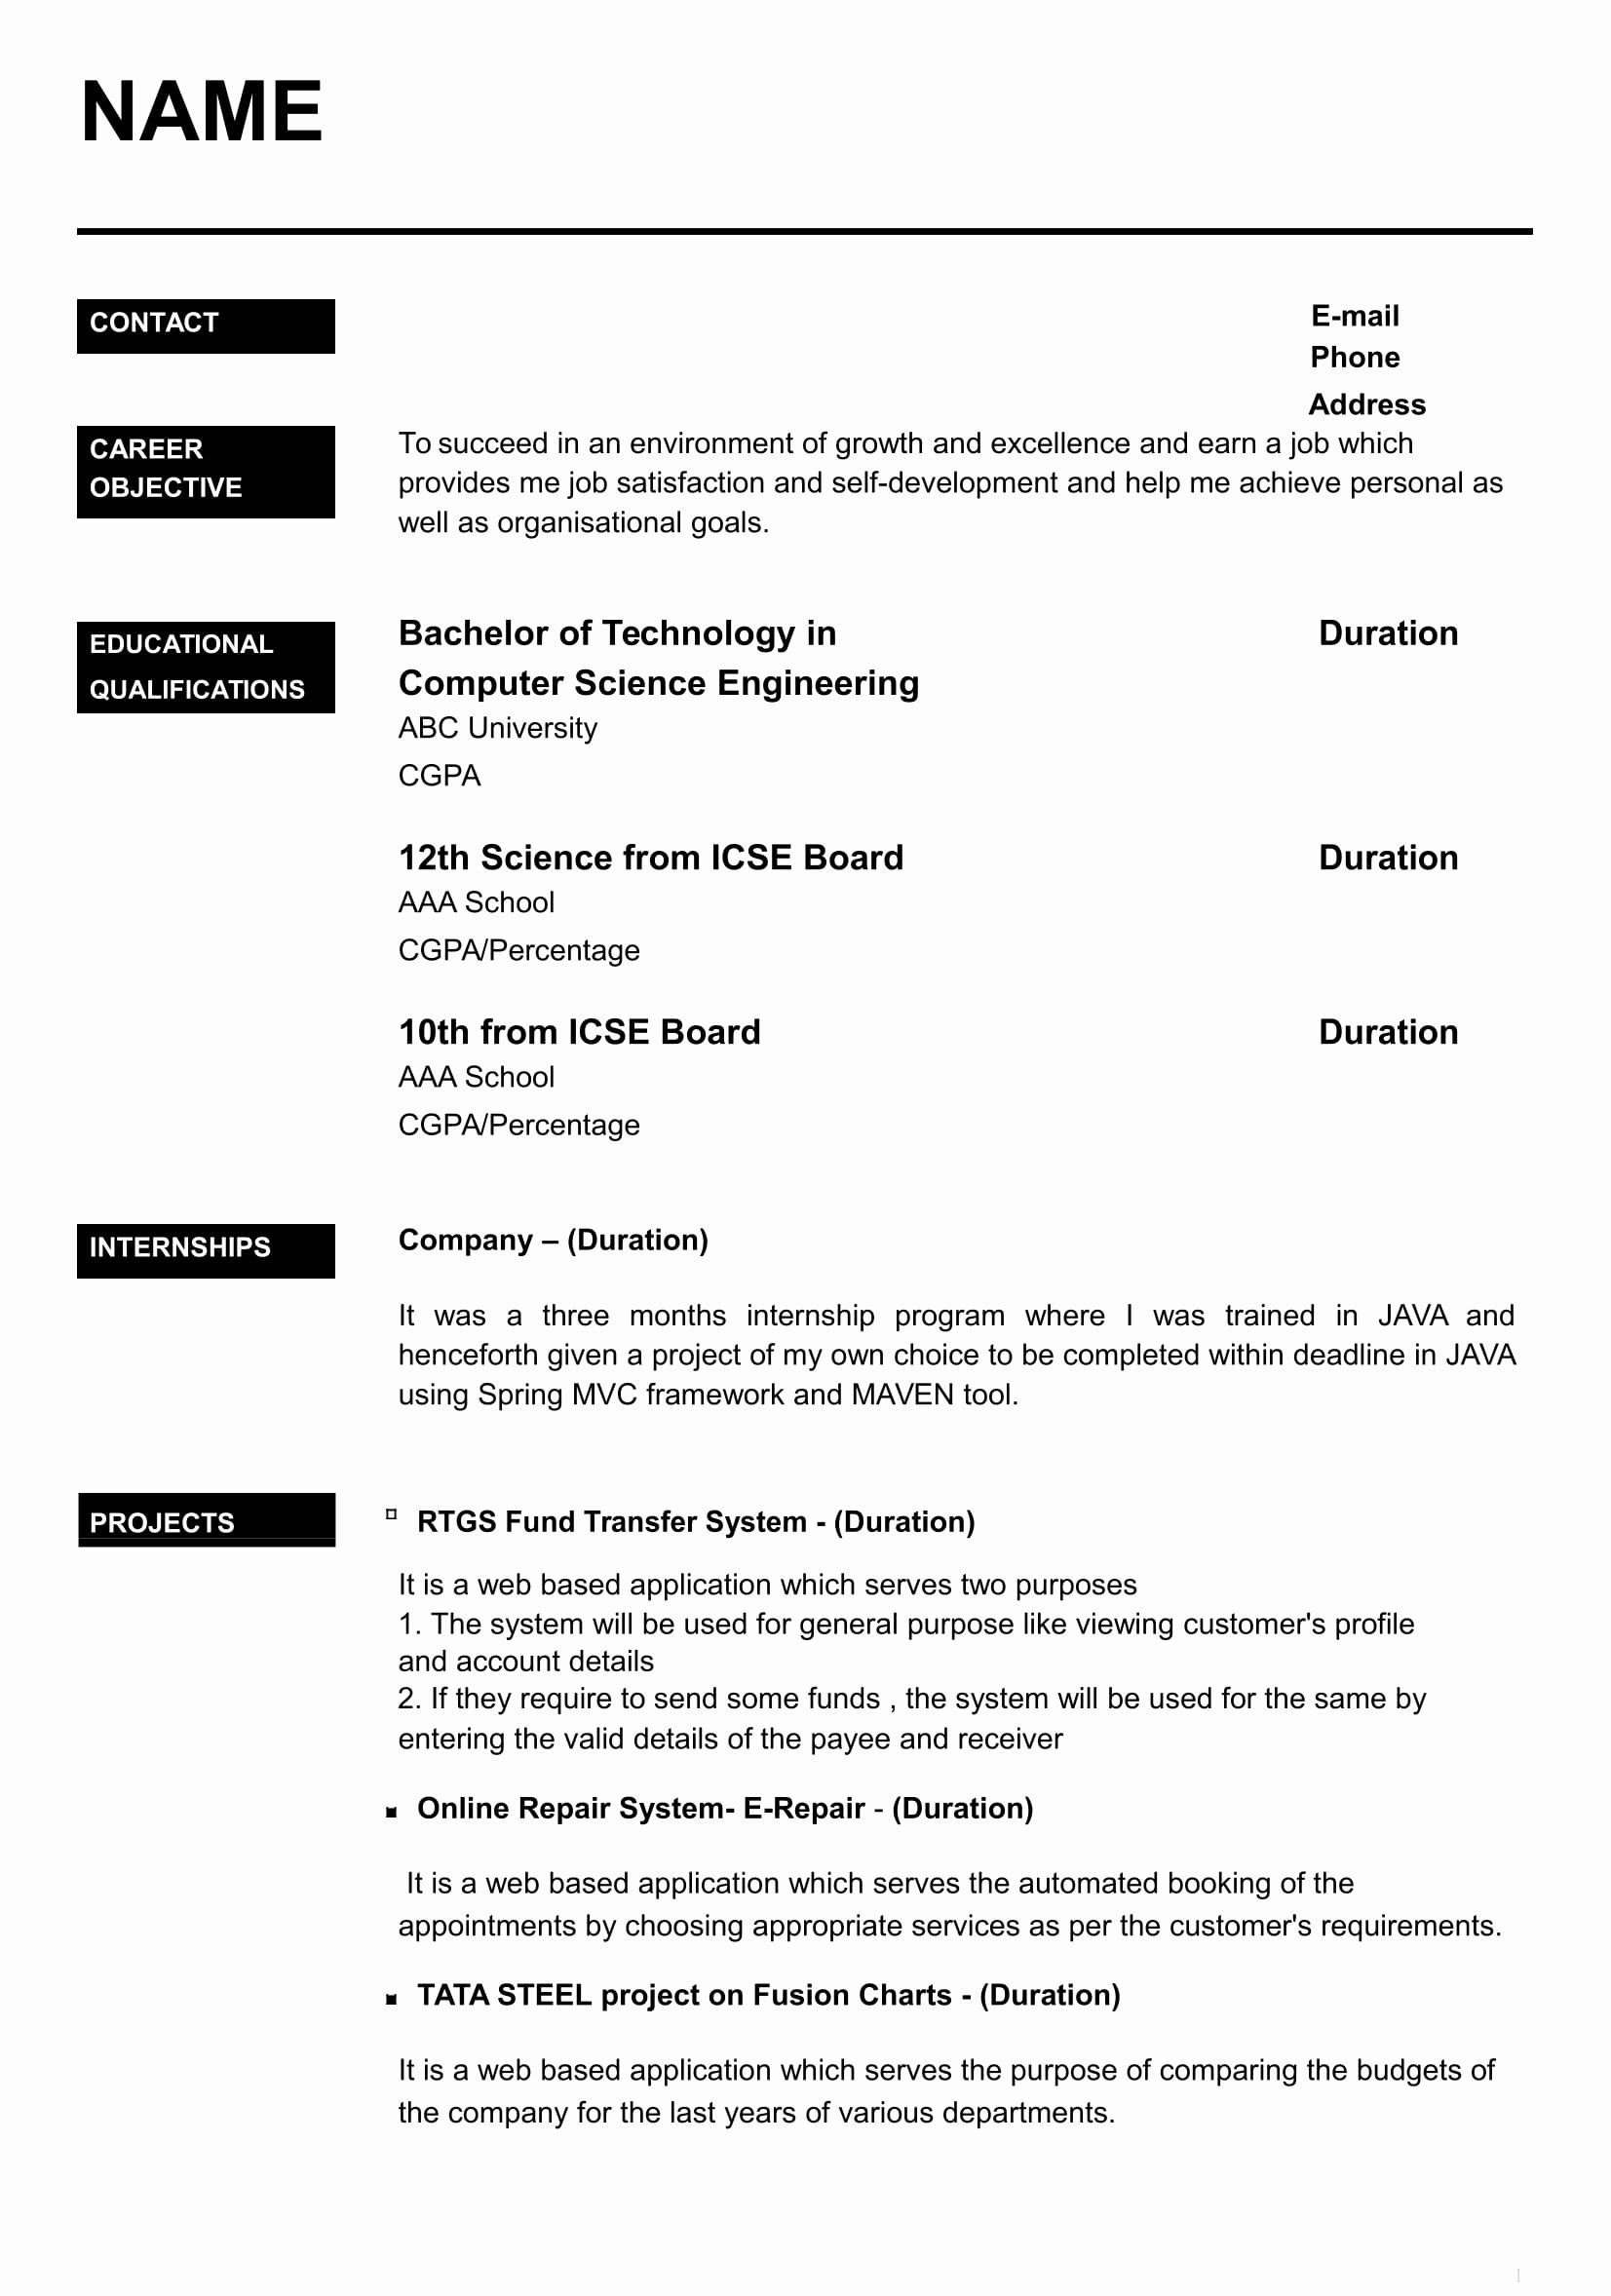 Computer Science Resume format Lovely 32 Resume Templates for Freshers Download Free Word format